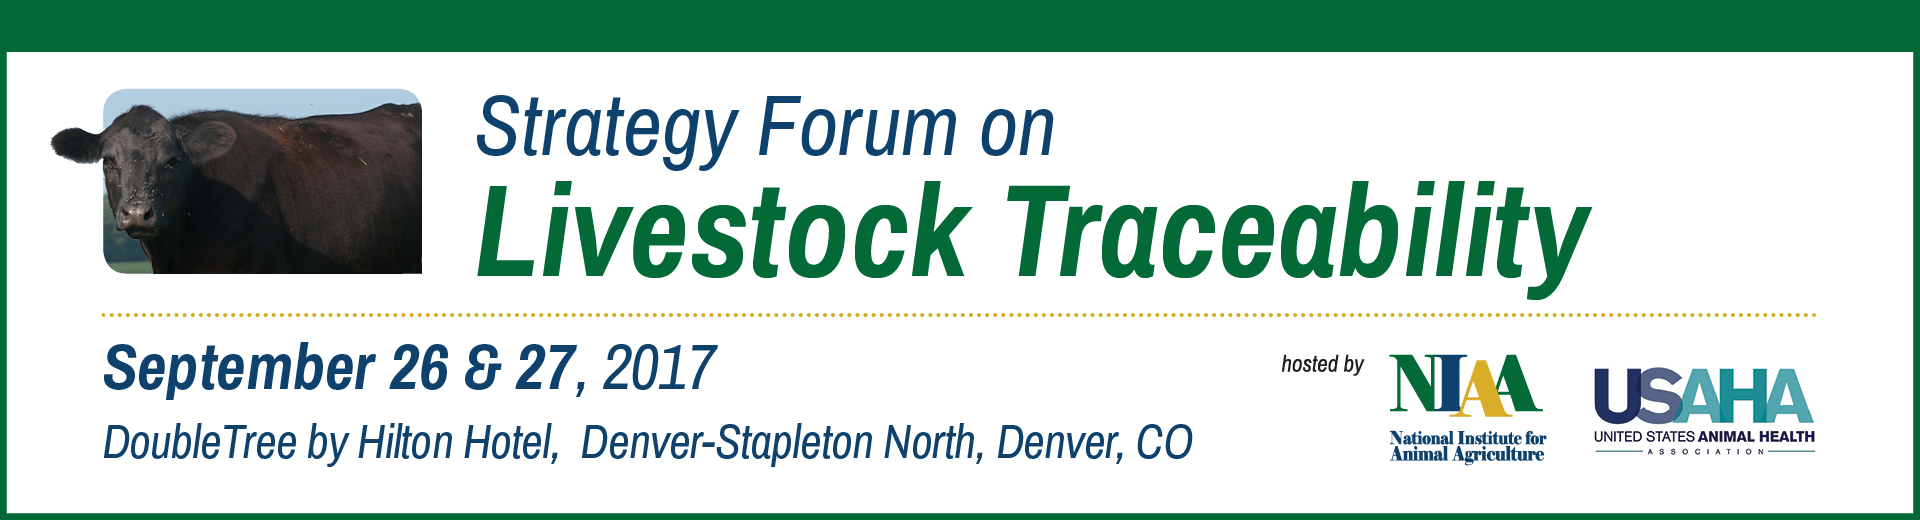 Strategy Forum on Livestock Traceability